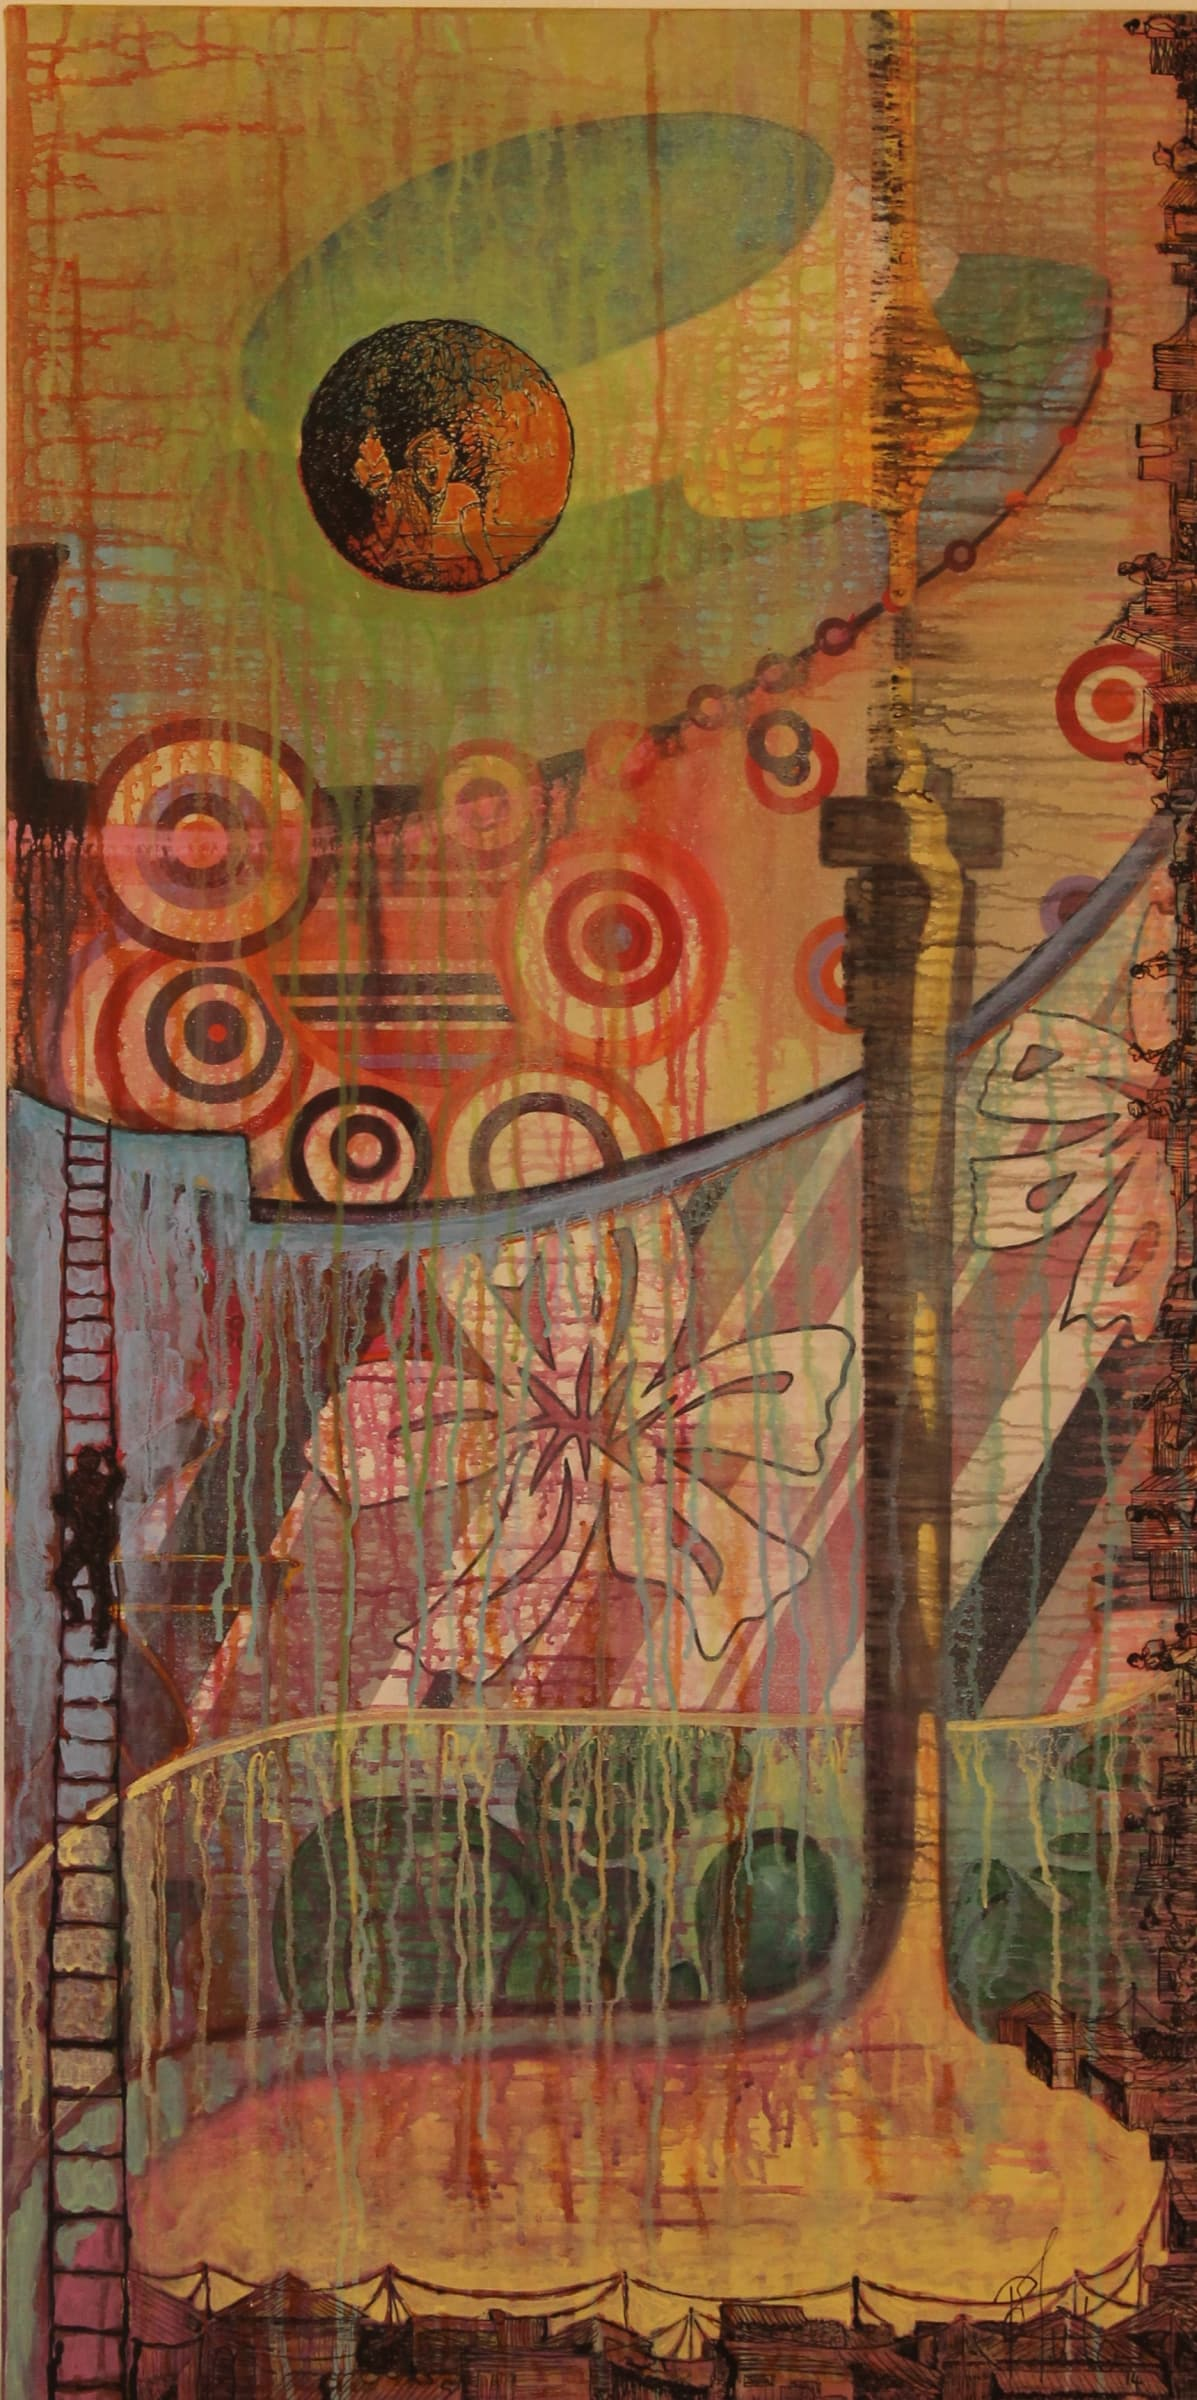 <span class=&#34;link fancybox-details-link&#34;><a href=&#34;/artworks/categories/121/626-robyn-field-izikothane-2016/&#34;>View Detail Page</a></span><div class=&#34;artist&#34;><strong>Robyn Field</strong></div> <div class=&#34;title&#34;><em>Izikothane</em>, 2016</div> <div class=&#34;medium&#34;>Charcoal, acrylic and Indian ink on canvas</div> <div class=&#34;dimensions&#34;>60cm x 122cm</div>